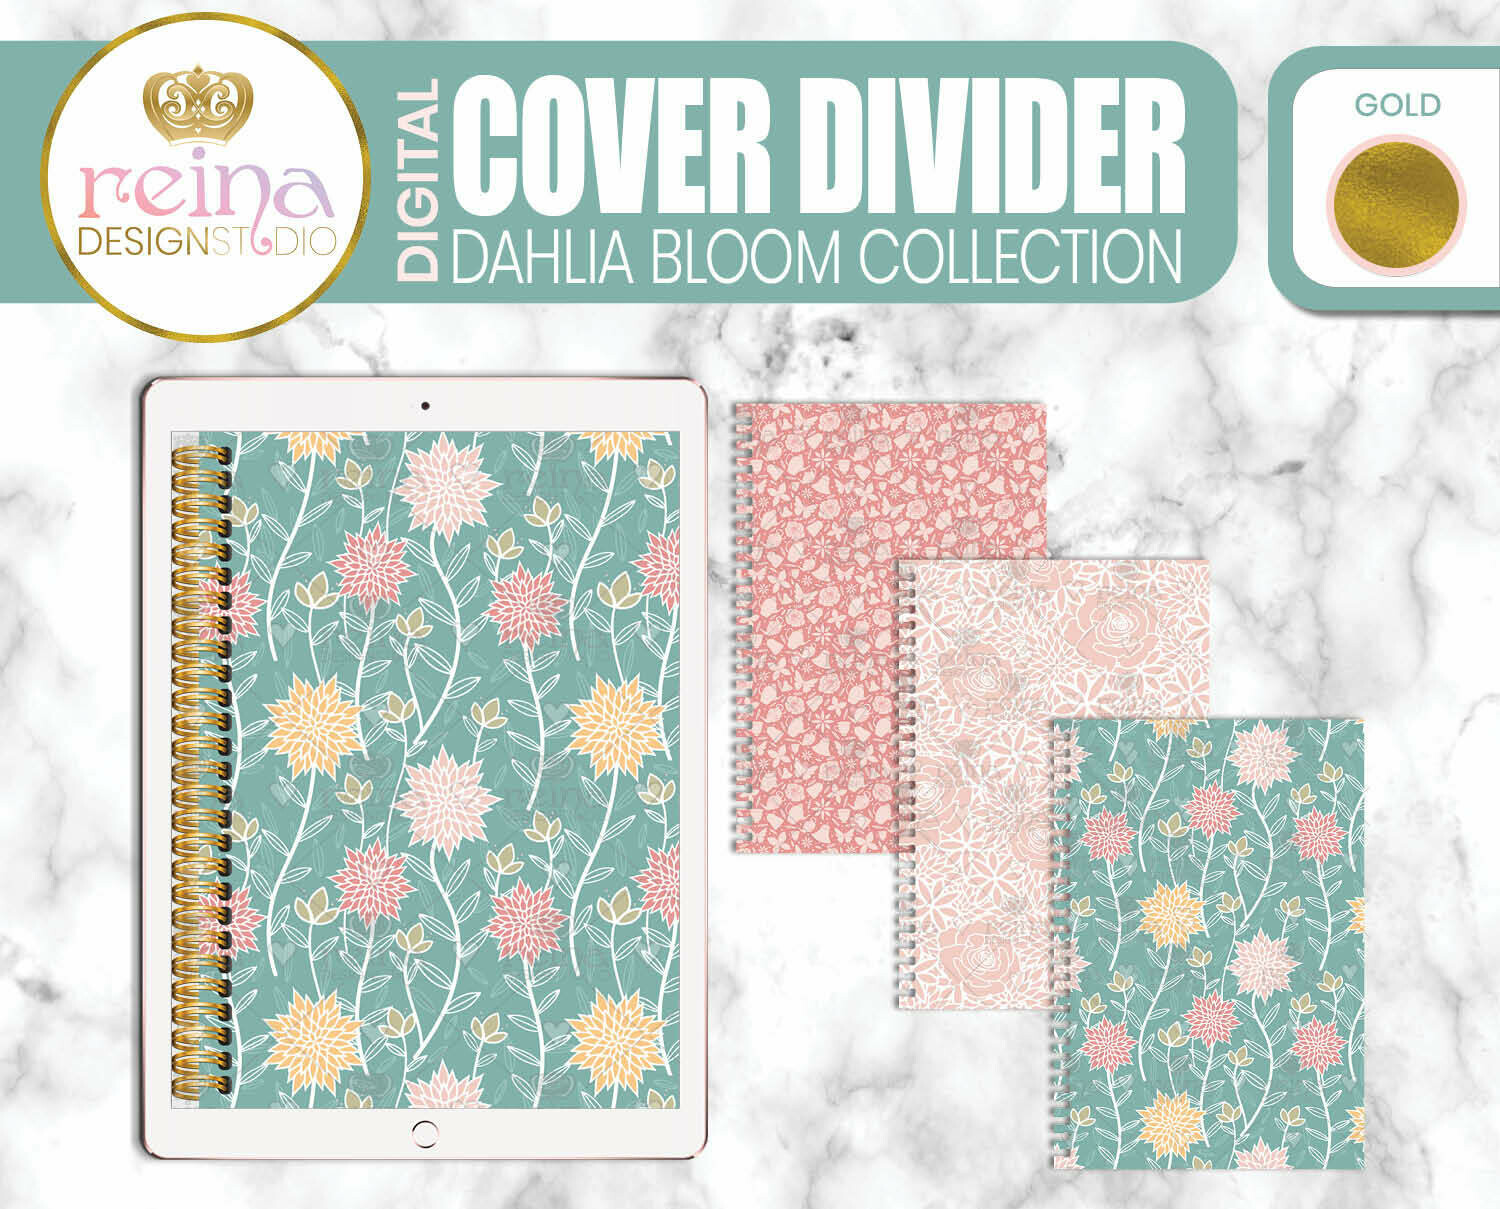 Interchangeable Digital Planner Cover and Dividers   Dahlia Bloom, Gold